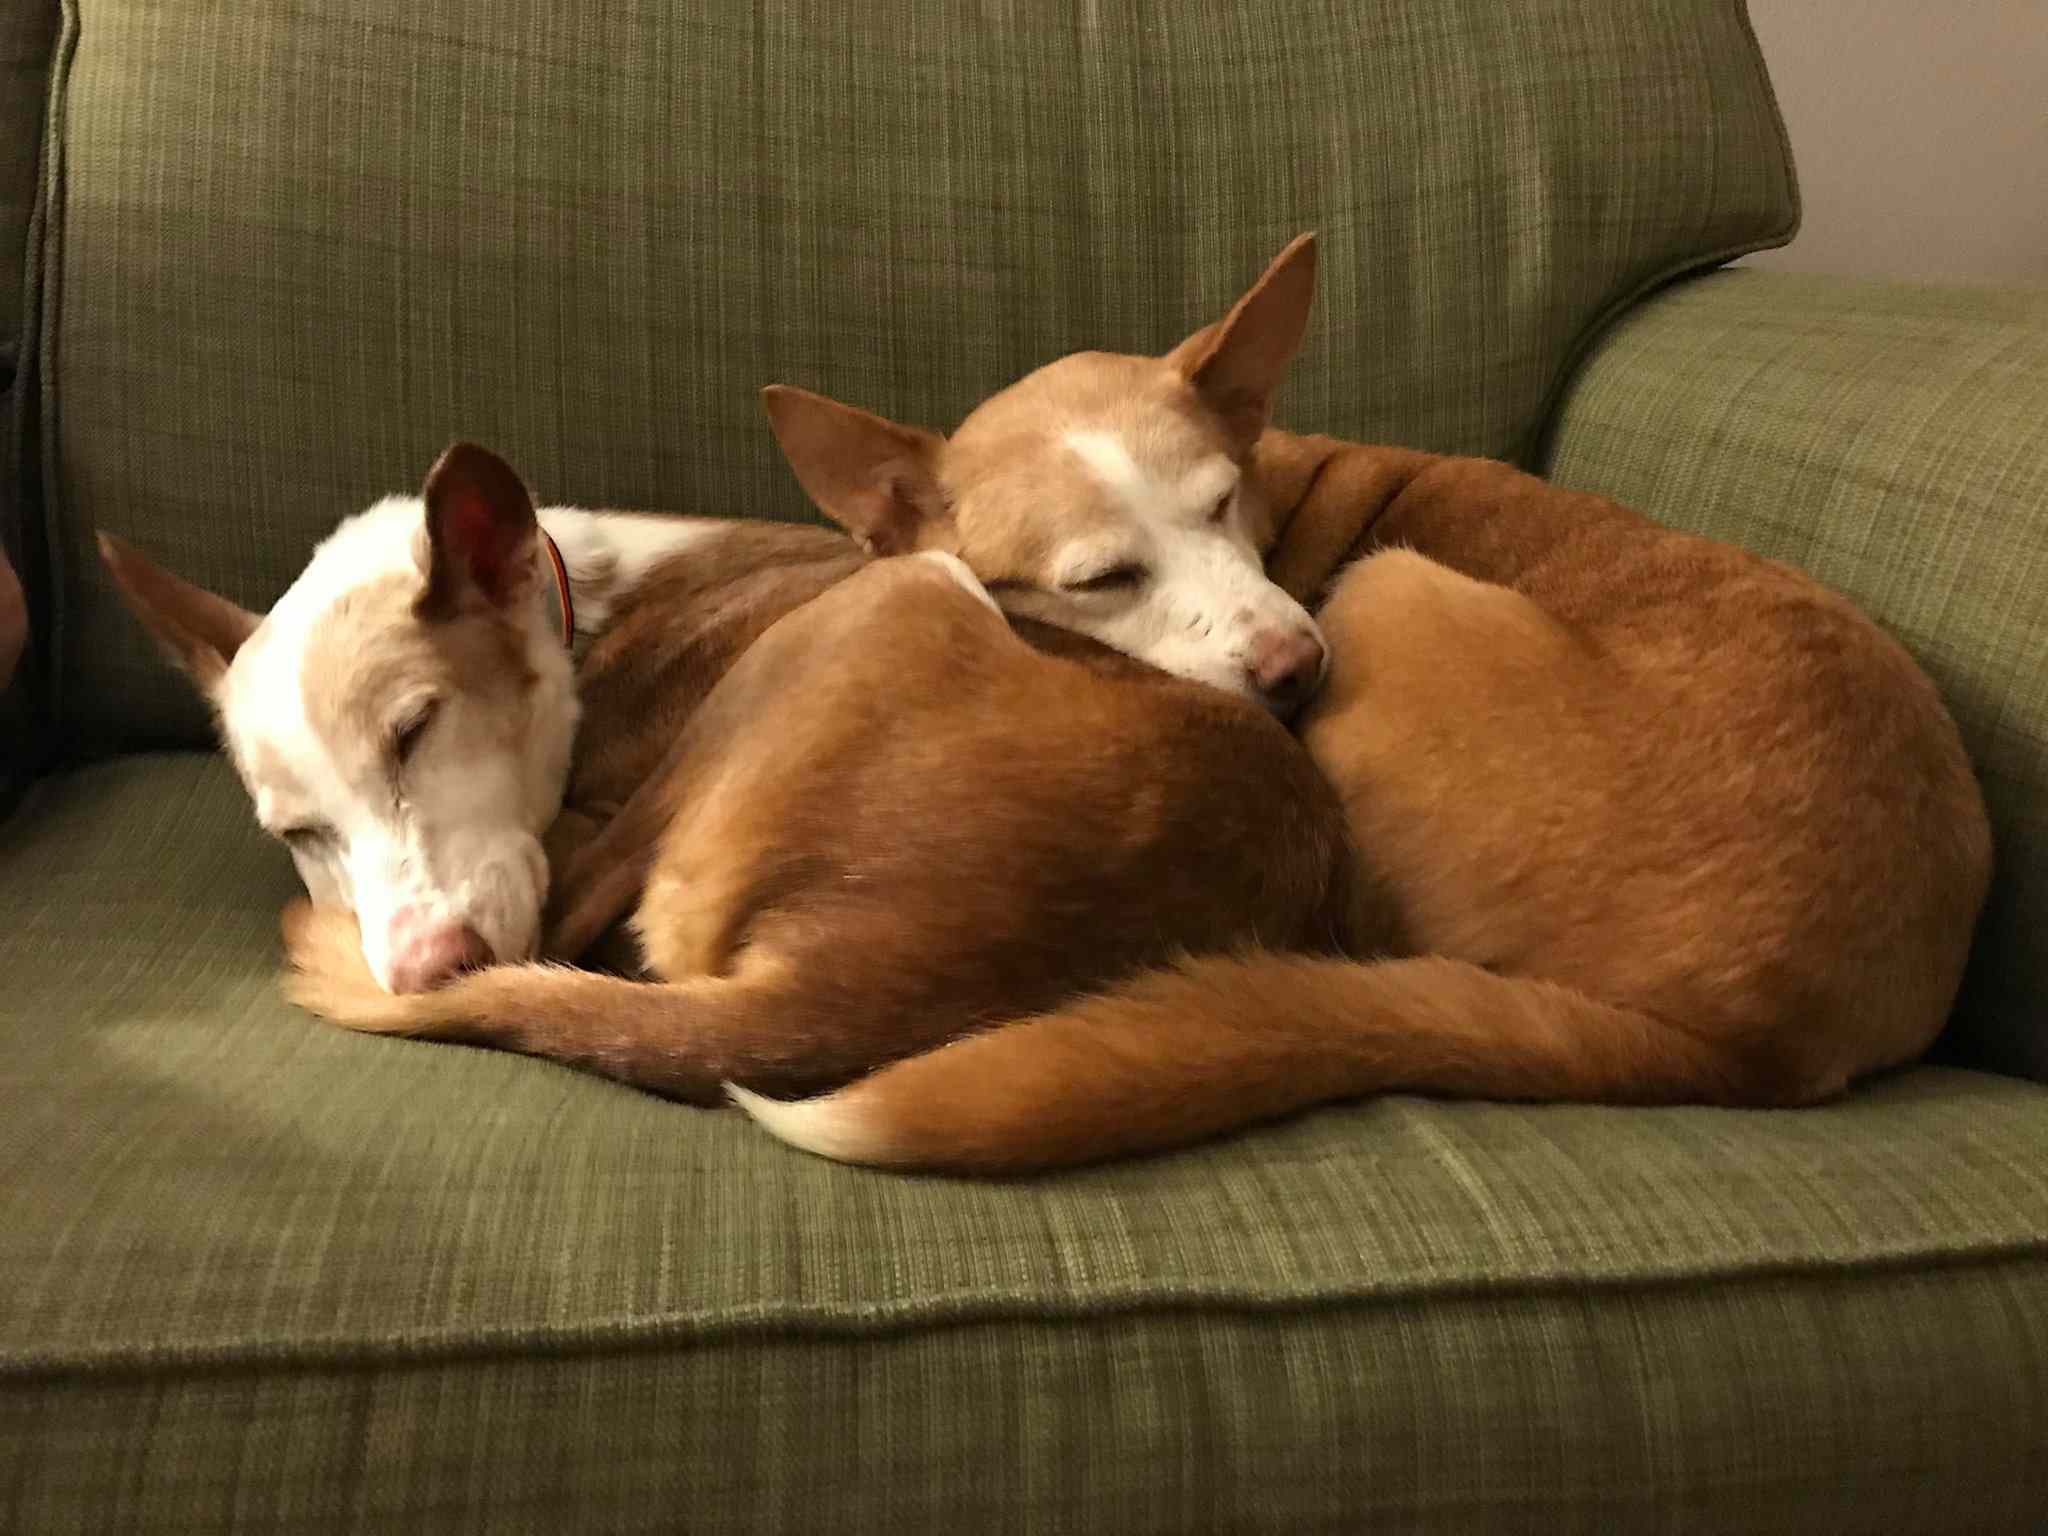 Podenco dogs sleeping on couch.